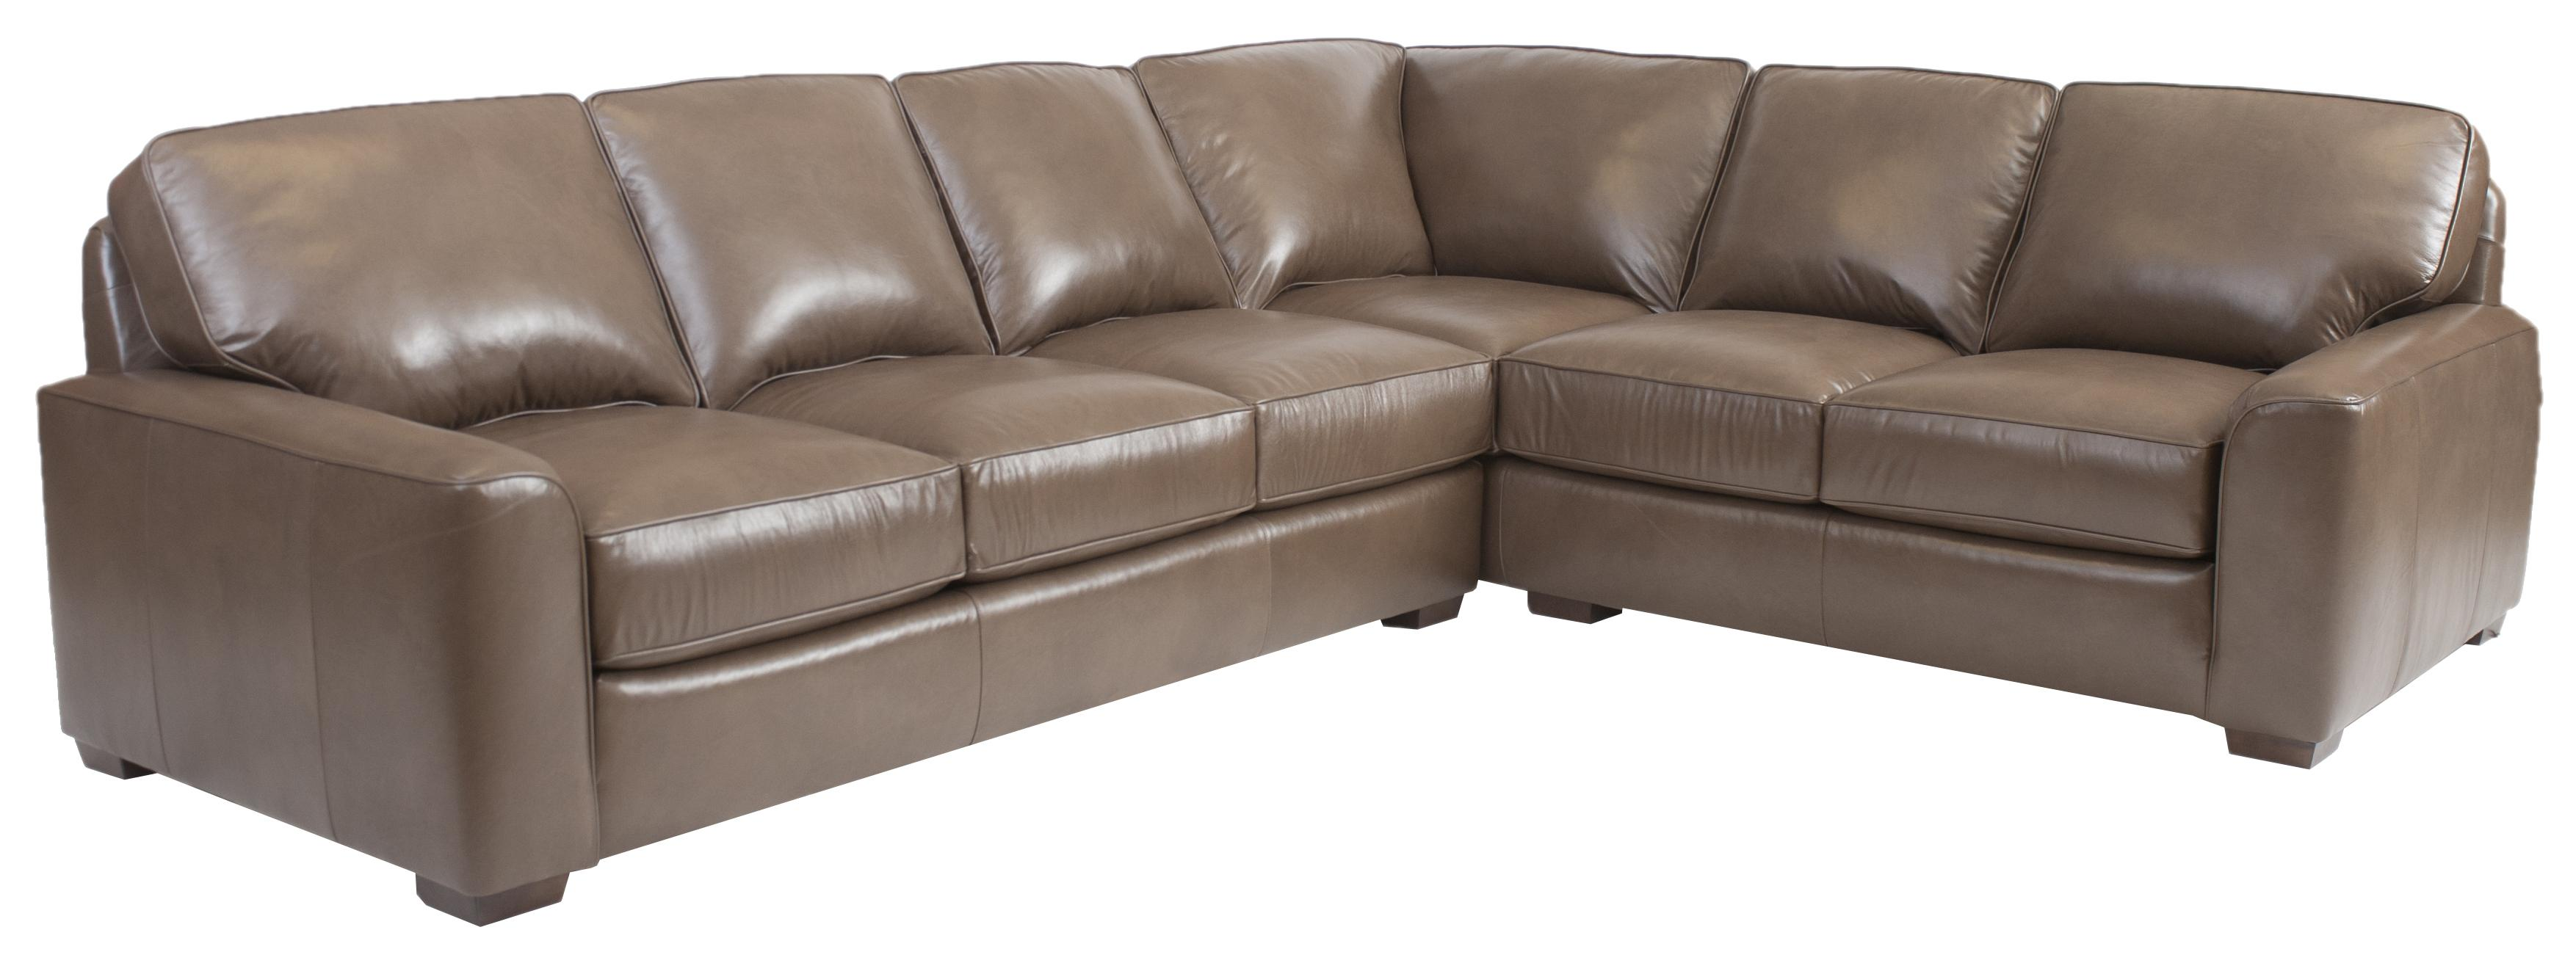 Corner Sectional Sofa by Smith Brothers